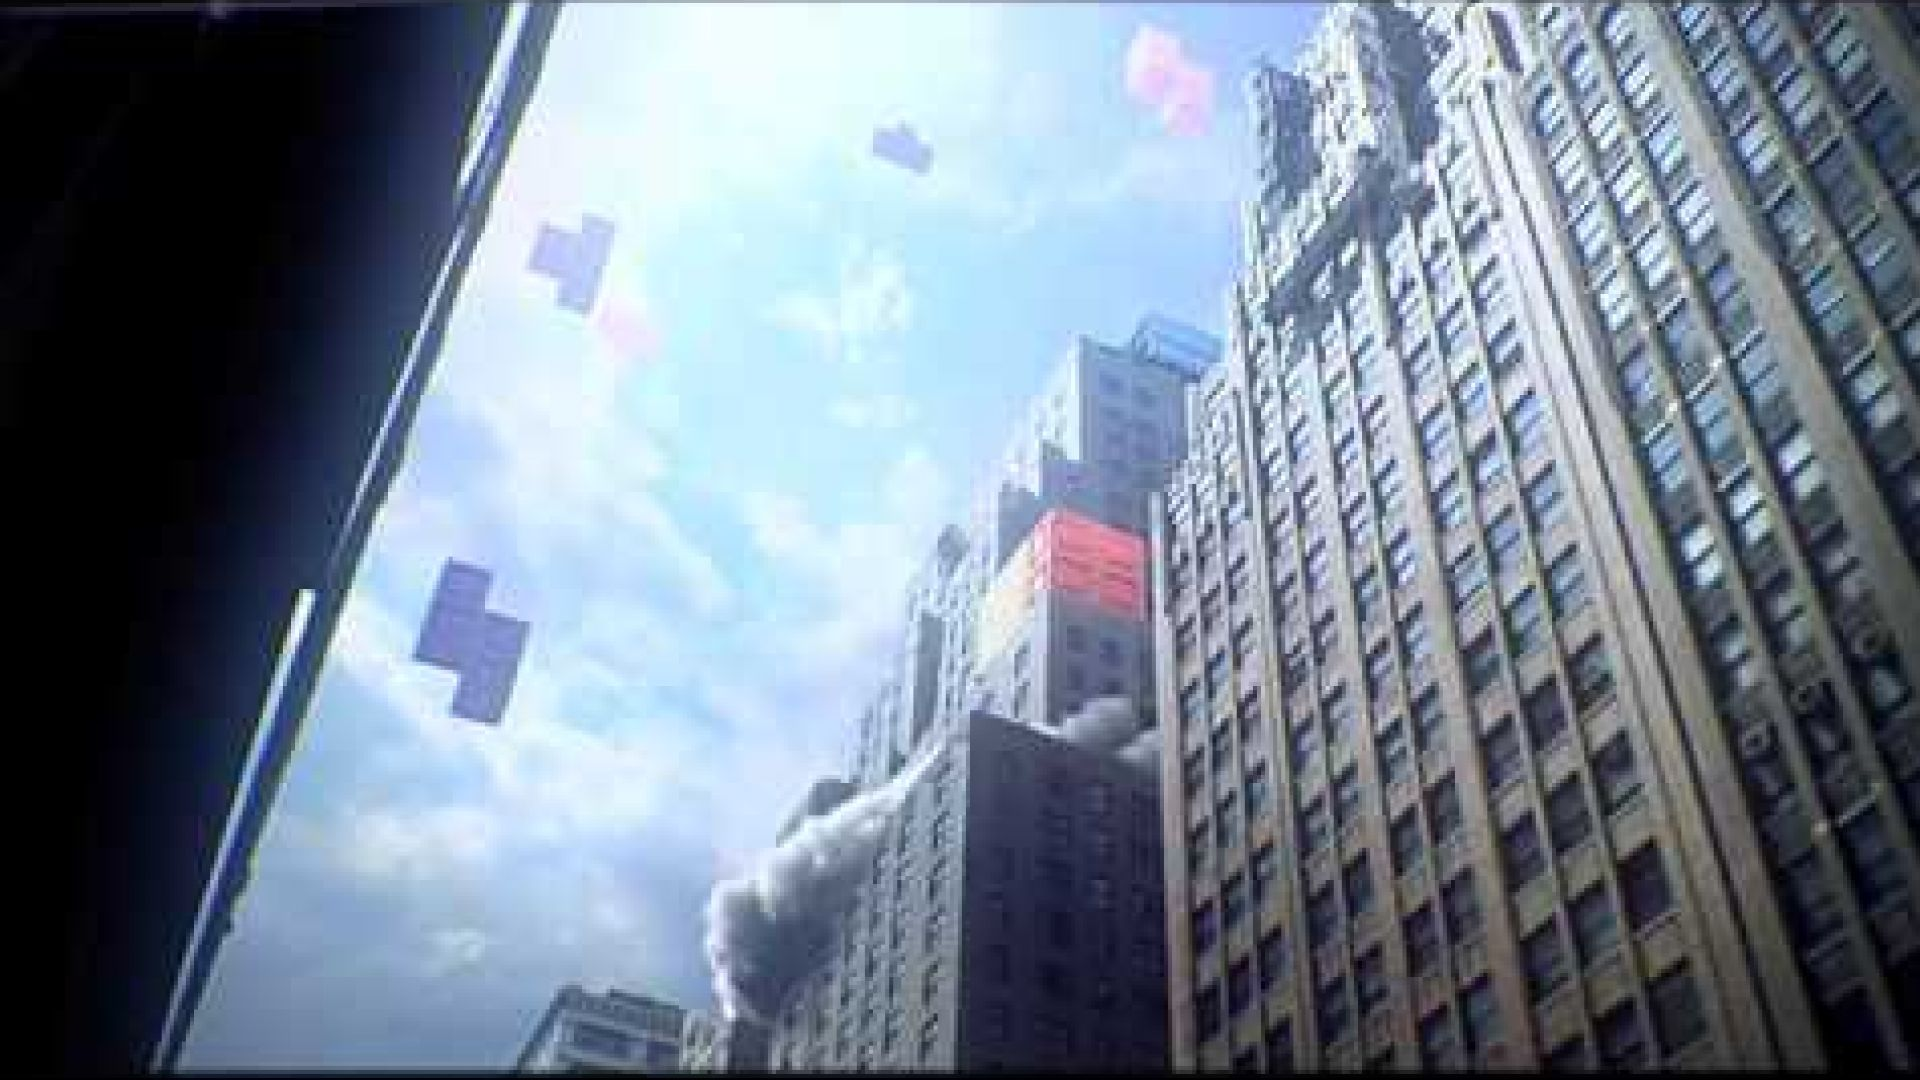 The Original 'Pixels' Short Movie That Inspired The Feature